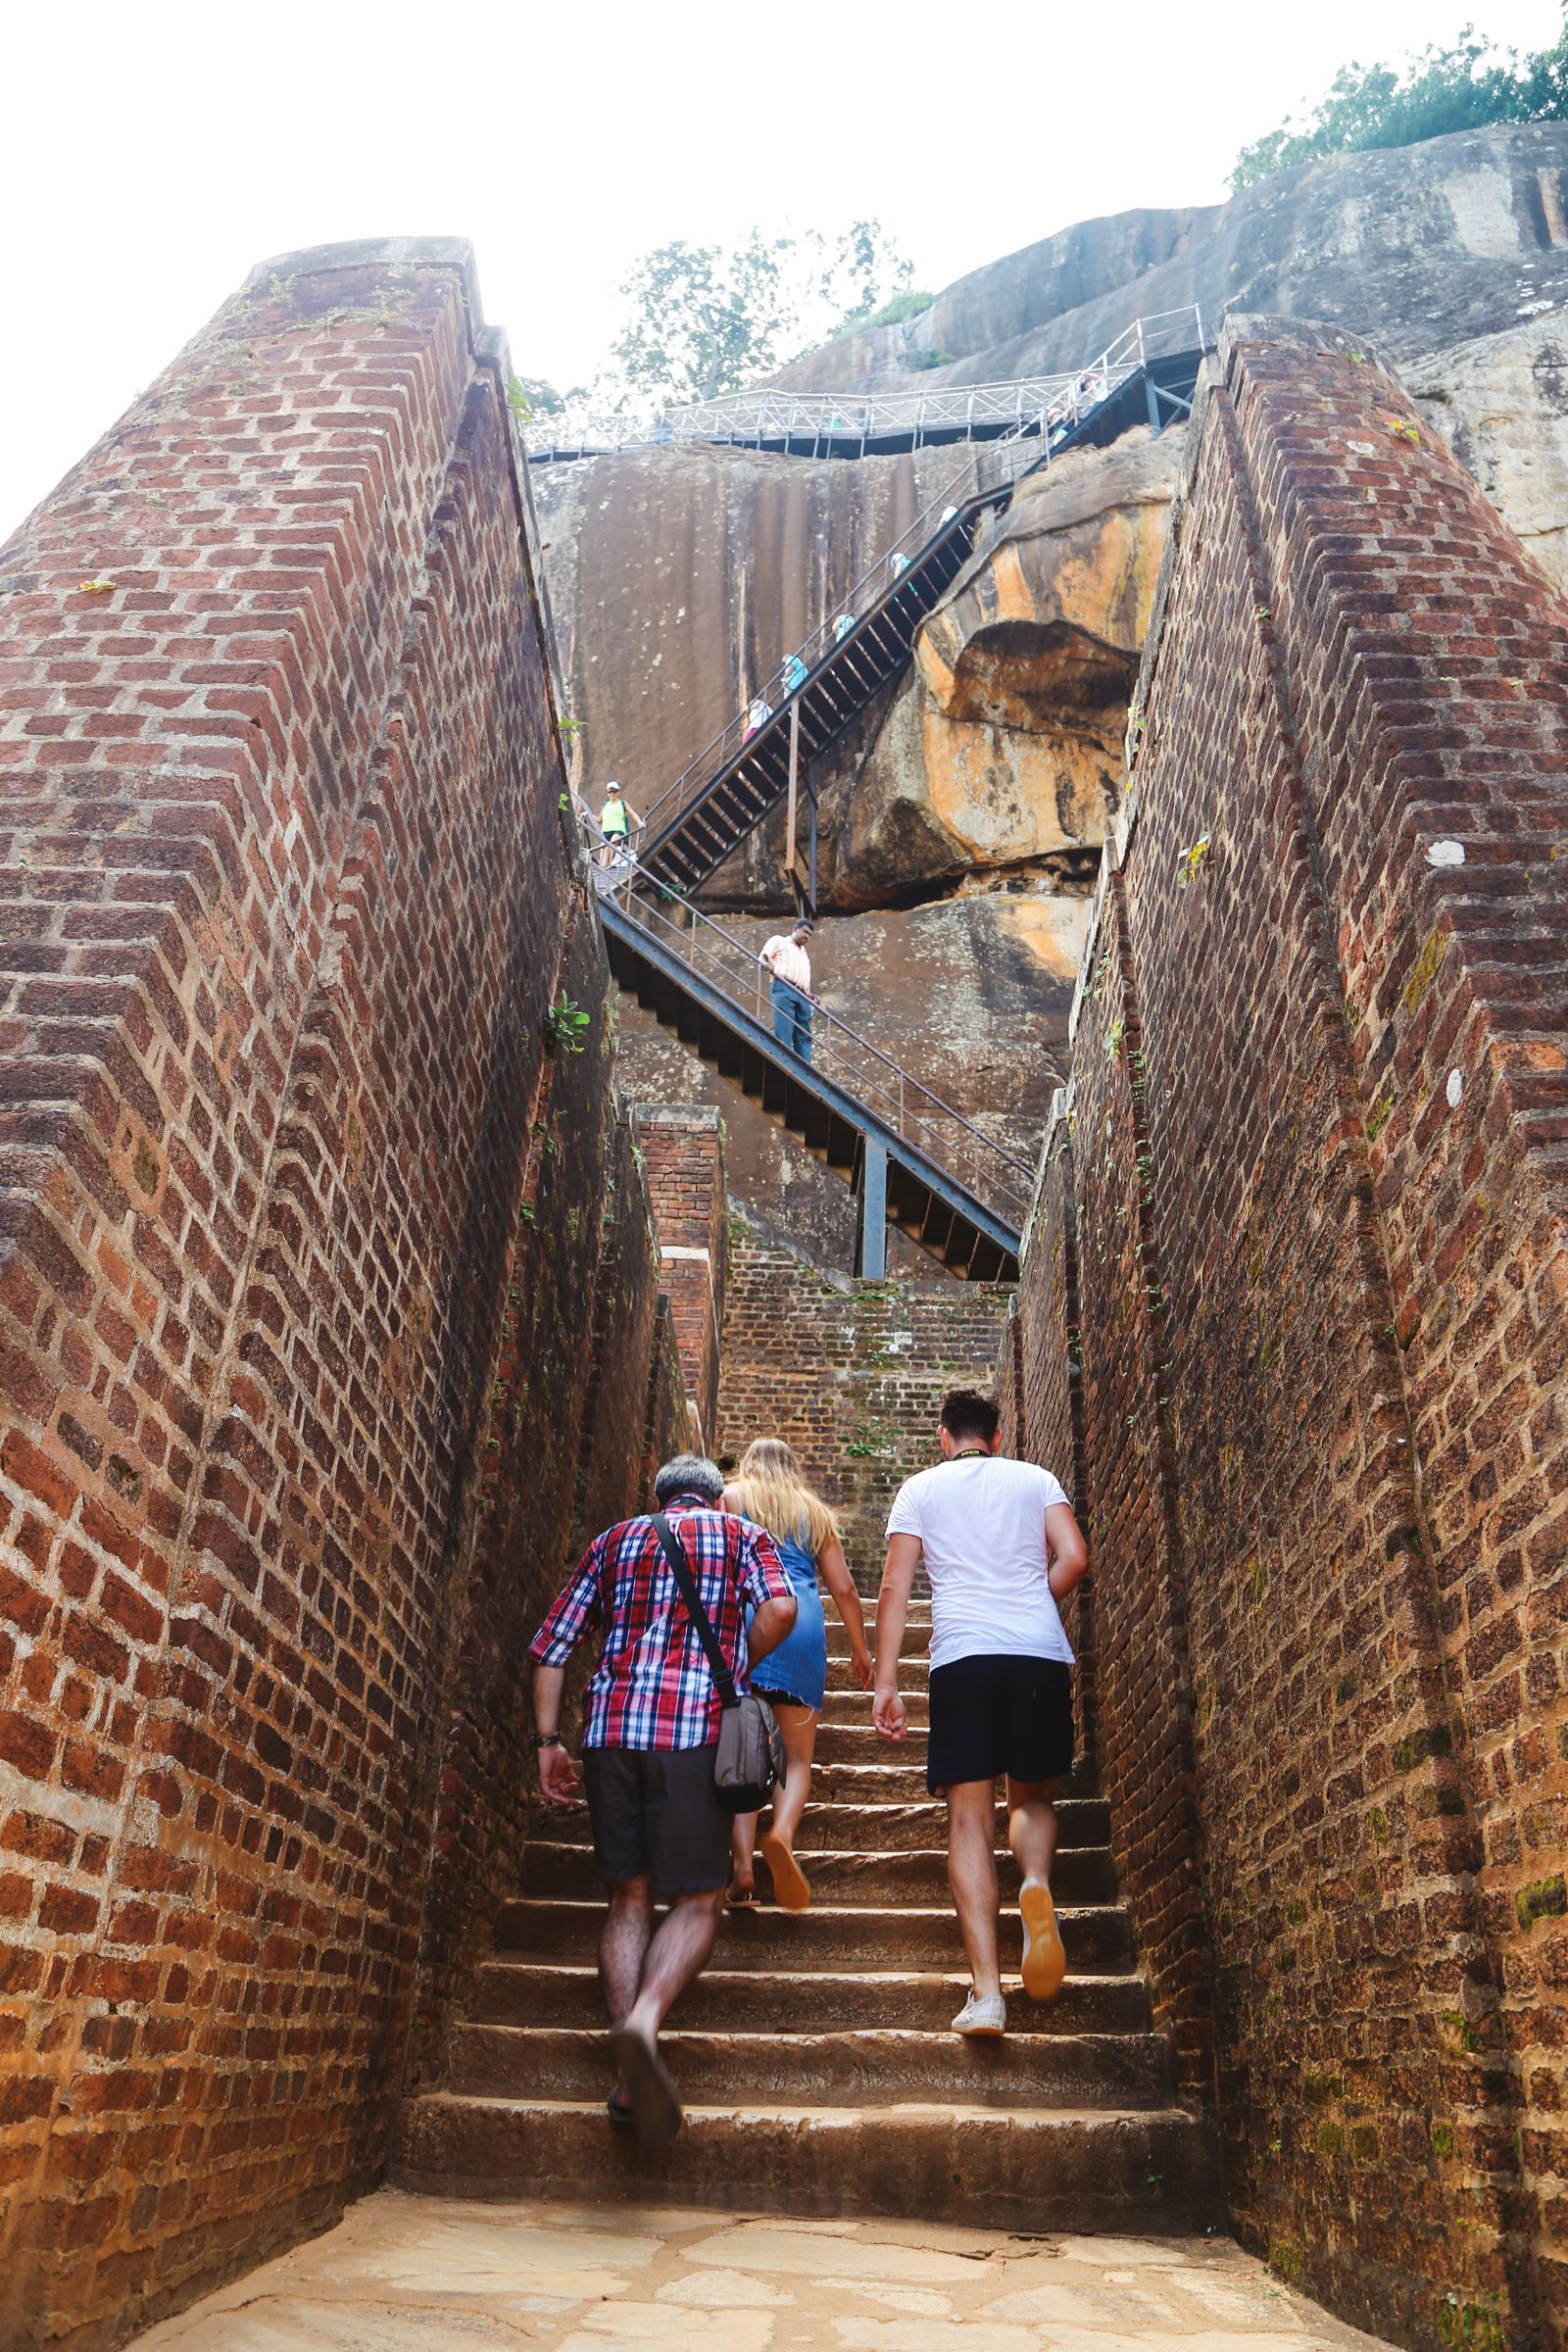 The Complete Guide To Climbing Sri Lanka's UNESCO World Heritage Site Of Sigiriya - Lion Rock (28)